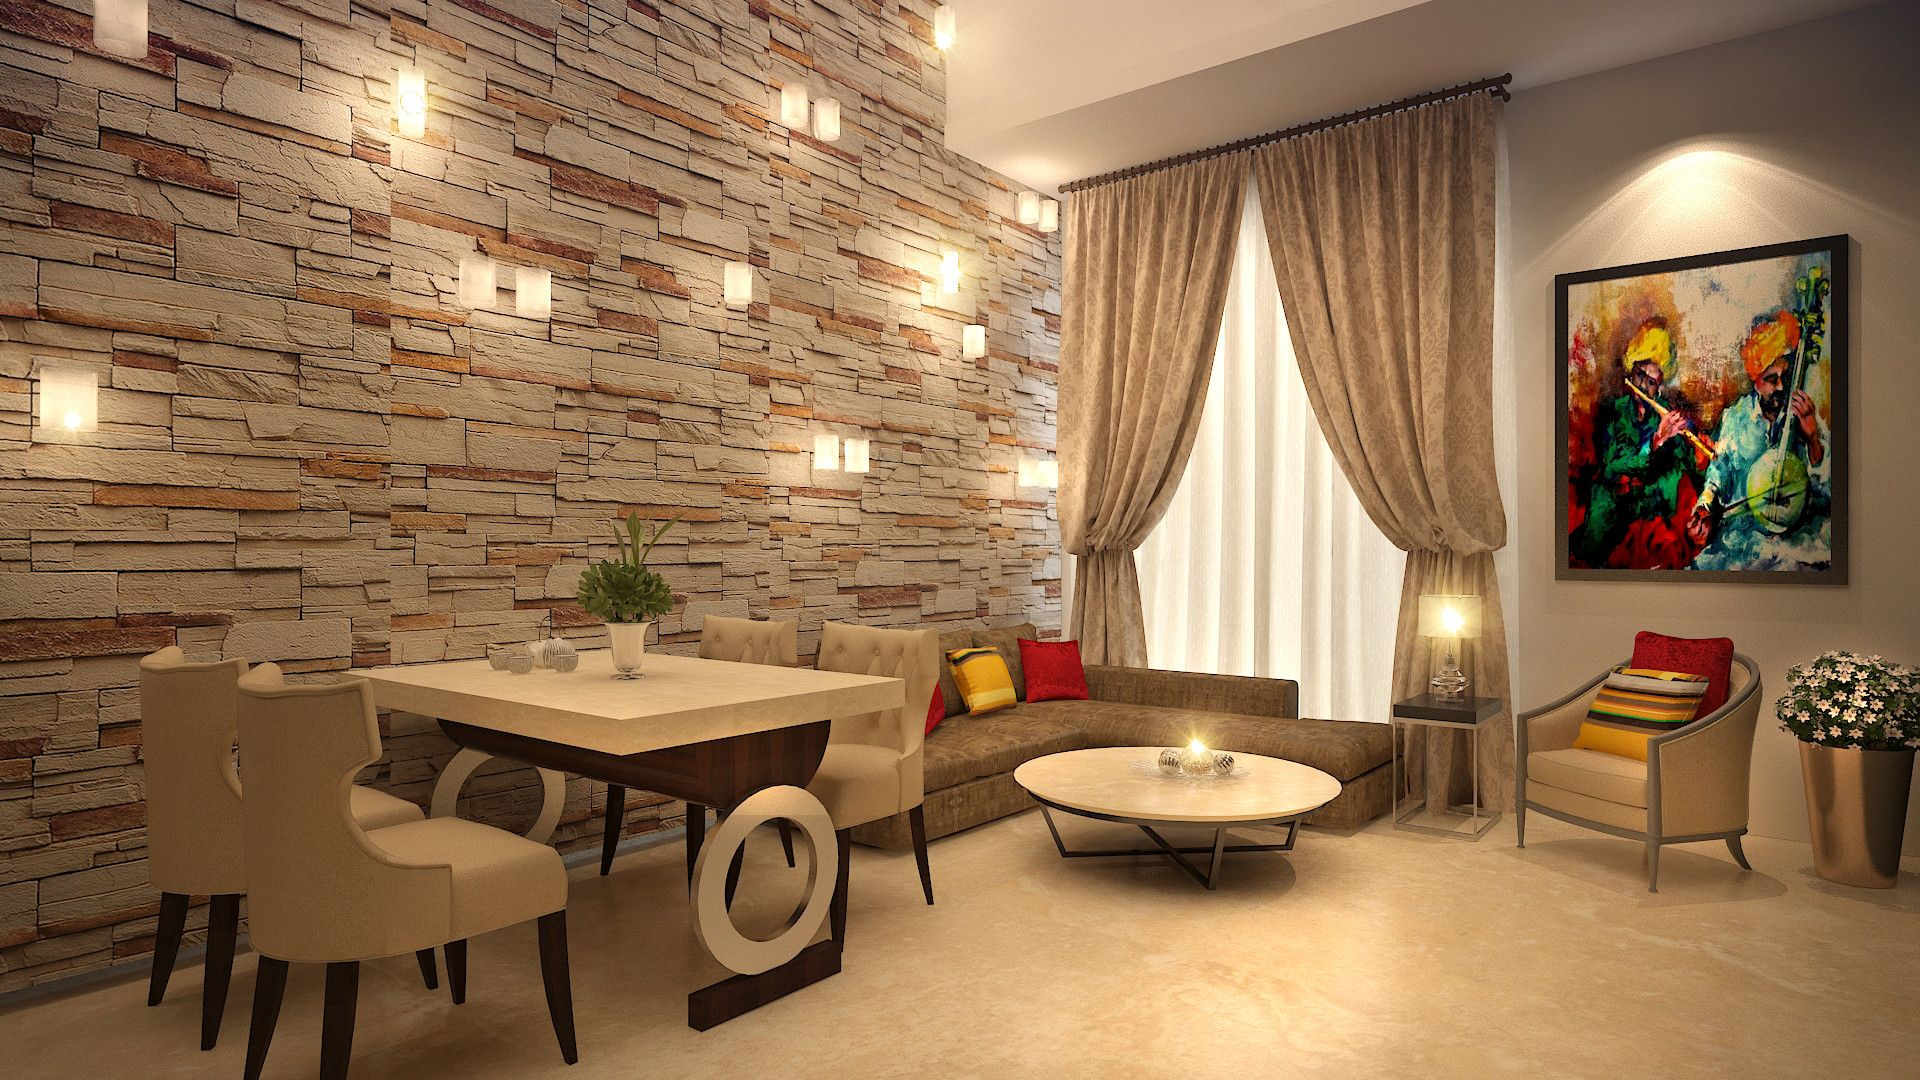 Beige color ambiance of living room having fabricated sofa at